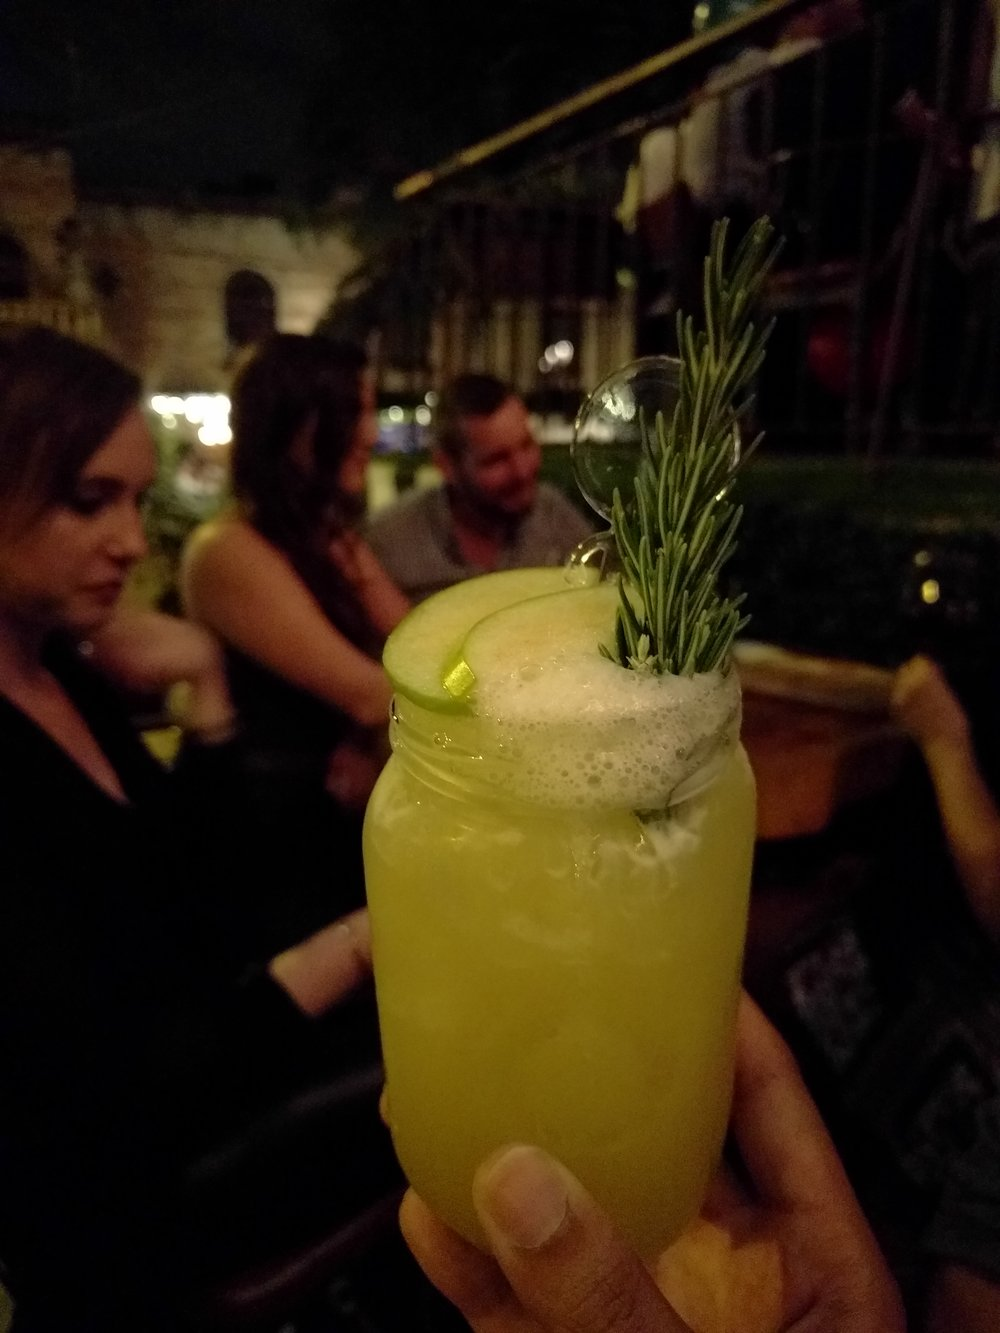 A Green Apple Whisky cocktail at 37Park